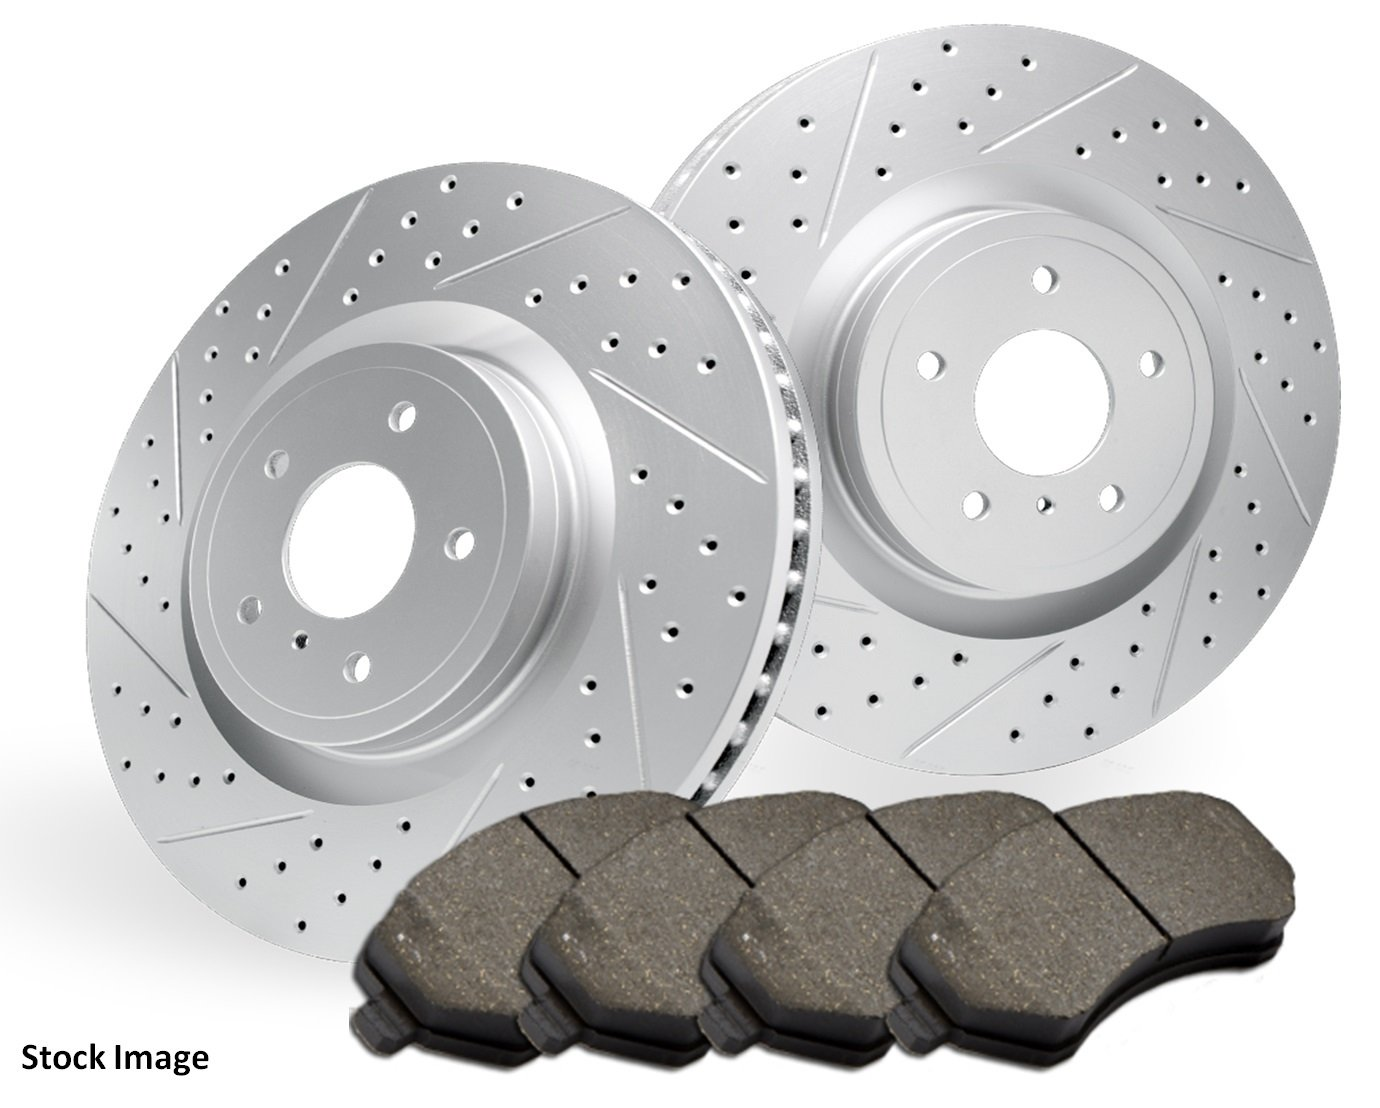 2015 For Ford F-150 Rear Cross Drilled Slotted and Anti Rust Coated Disc Brake Rotors and Ceramic Brake Pads (Note: 6 Holes; Manual Parking Brakes) Proforce